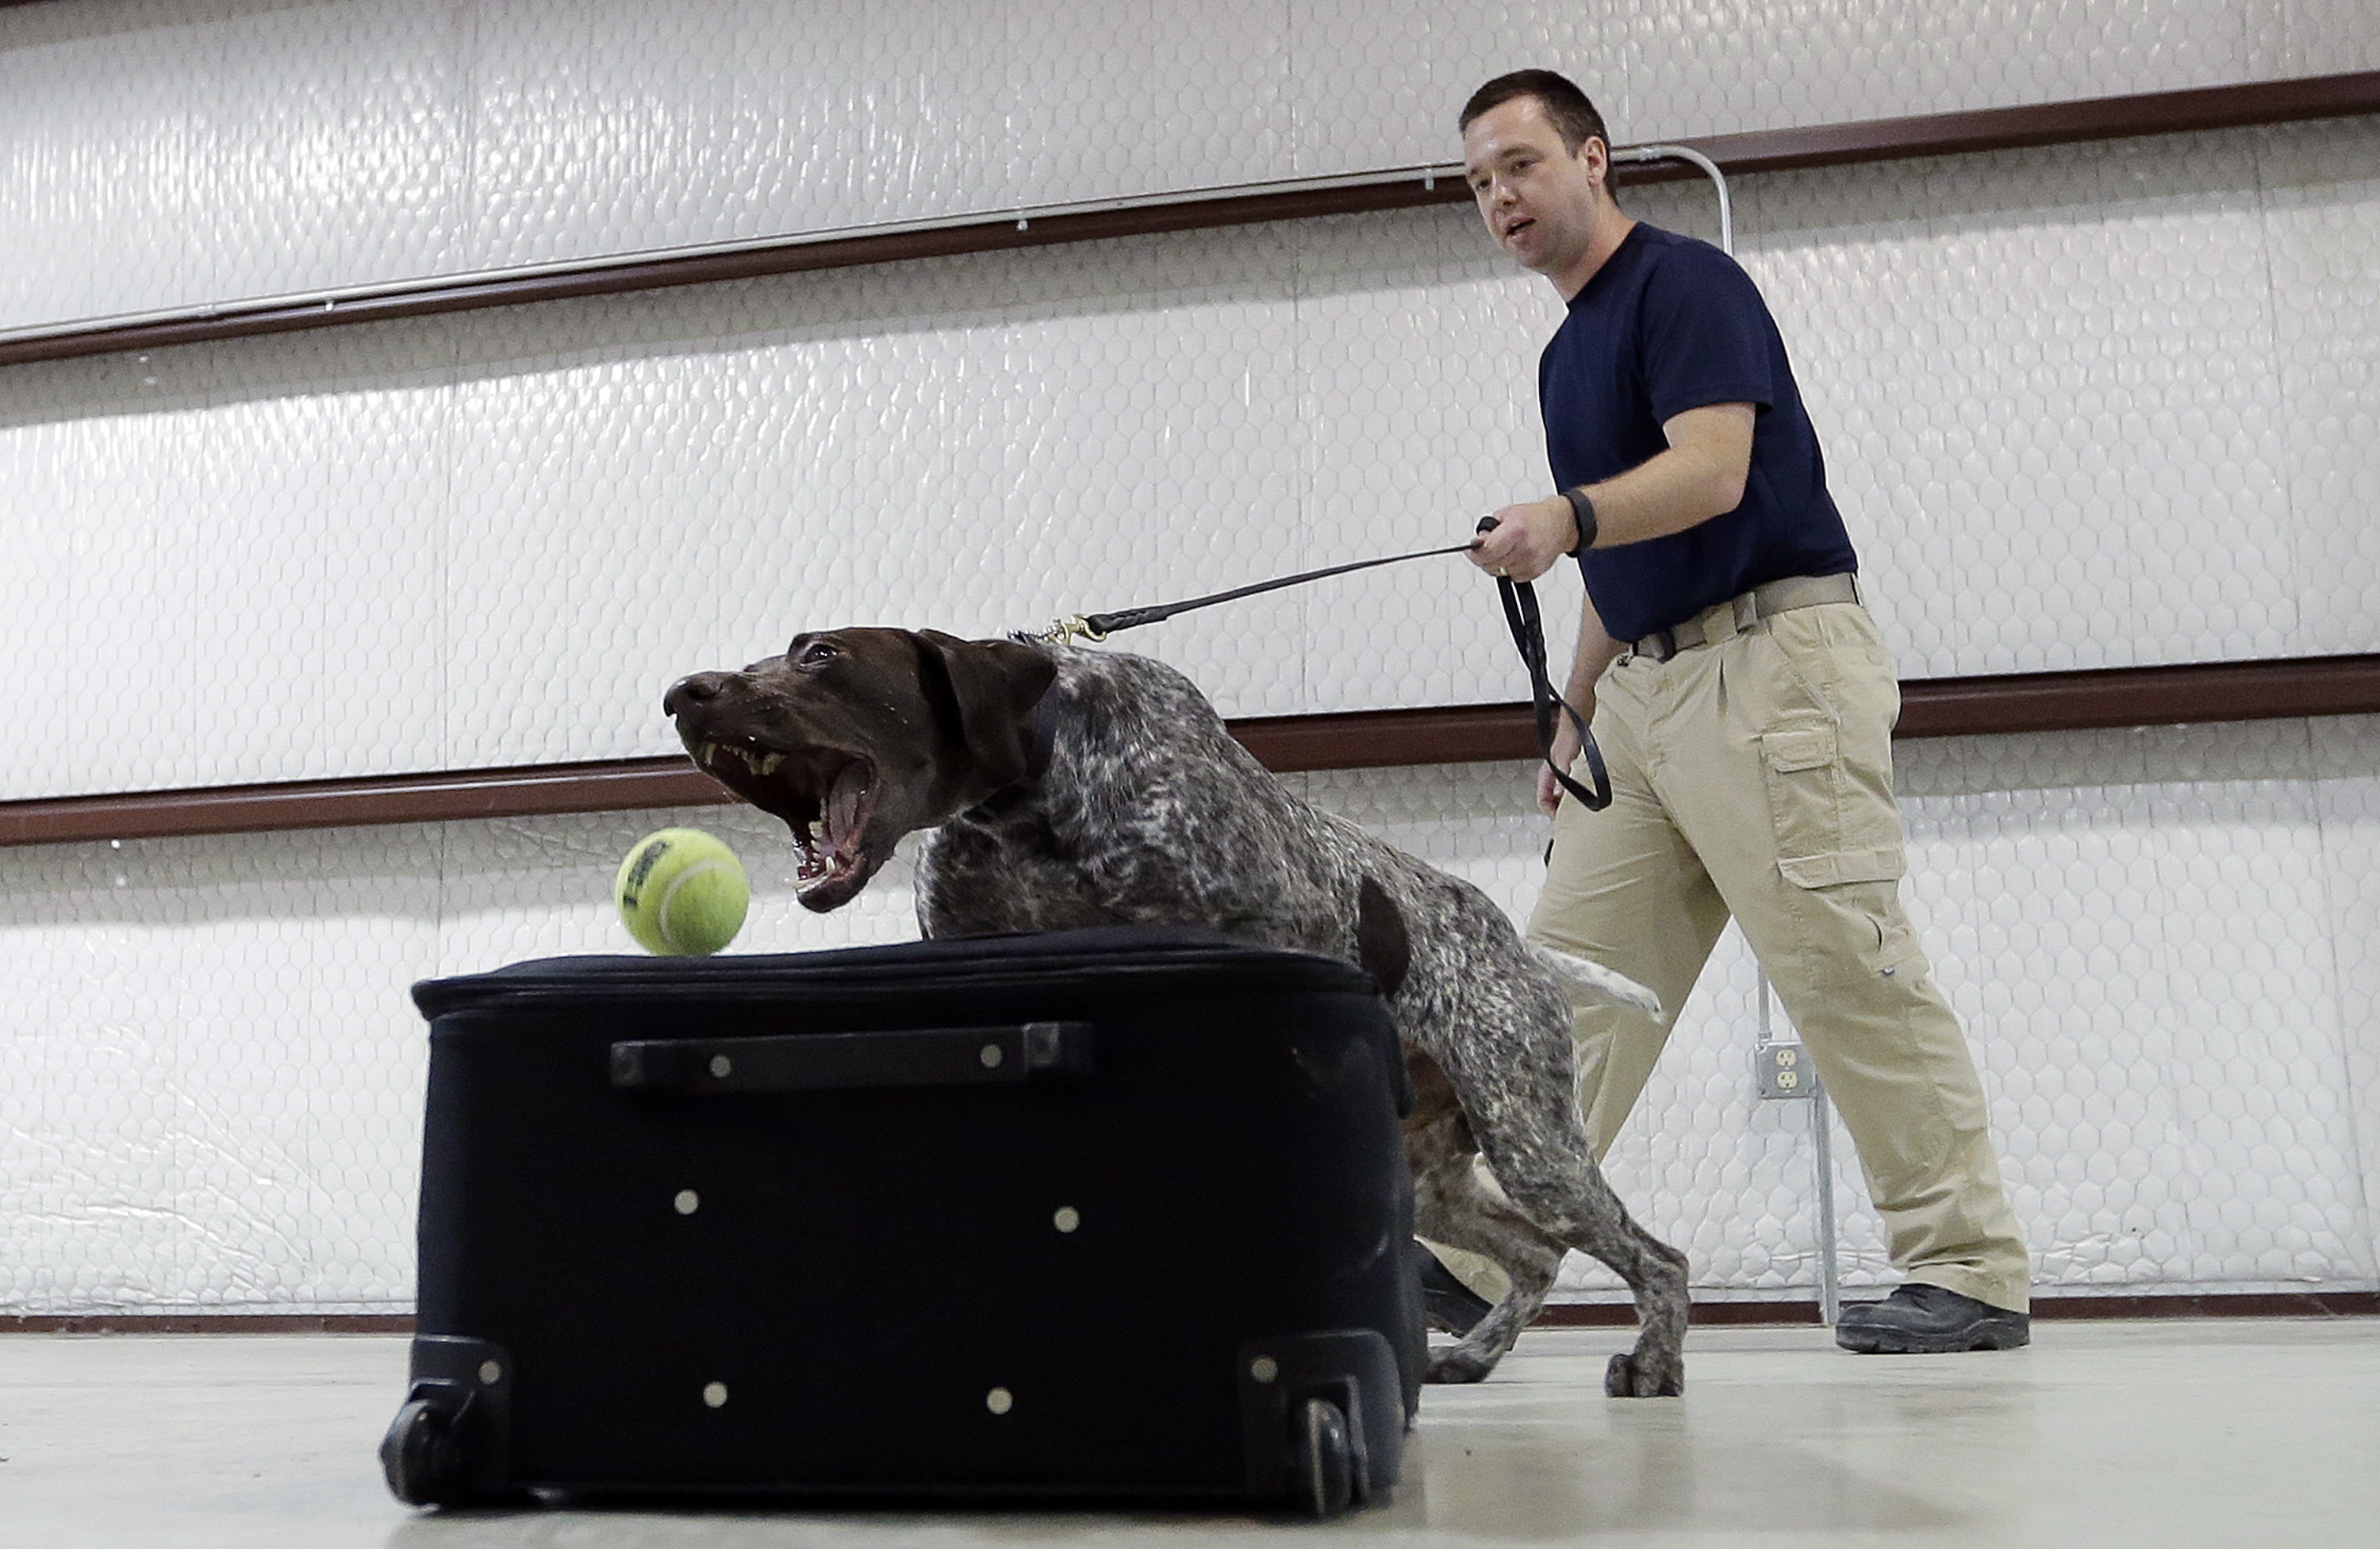 Transportation Security Administration dog trainer Mitchell Brown works with Atilla, a bomb-sniffing dog, in a makeshift luggage area at Lackland Air Force Base training facility in Texas.   Associated Press/Eric Gay